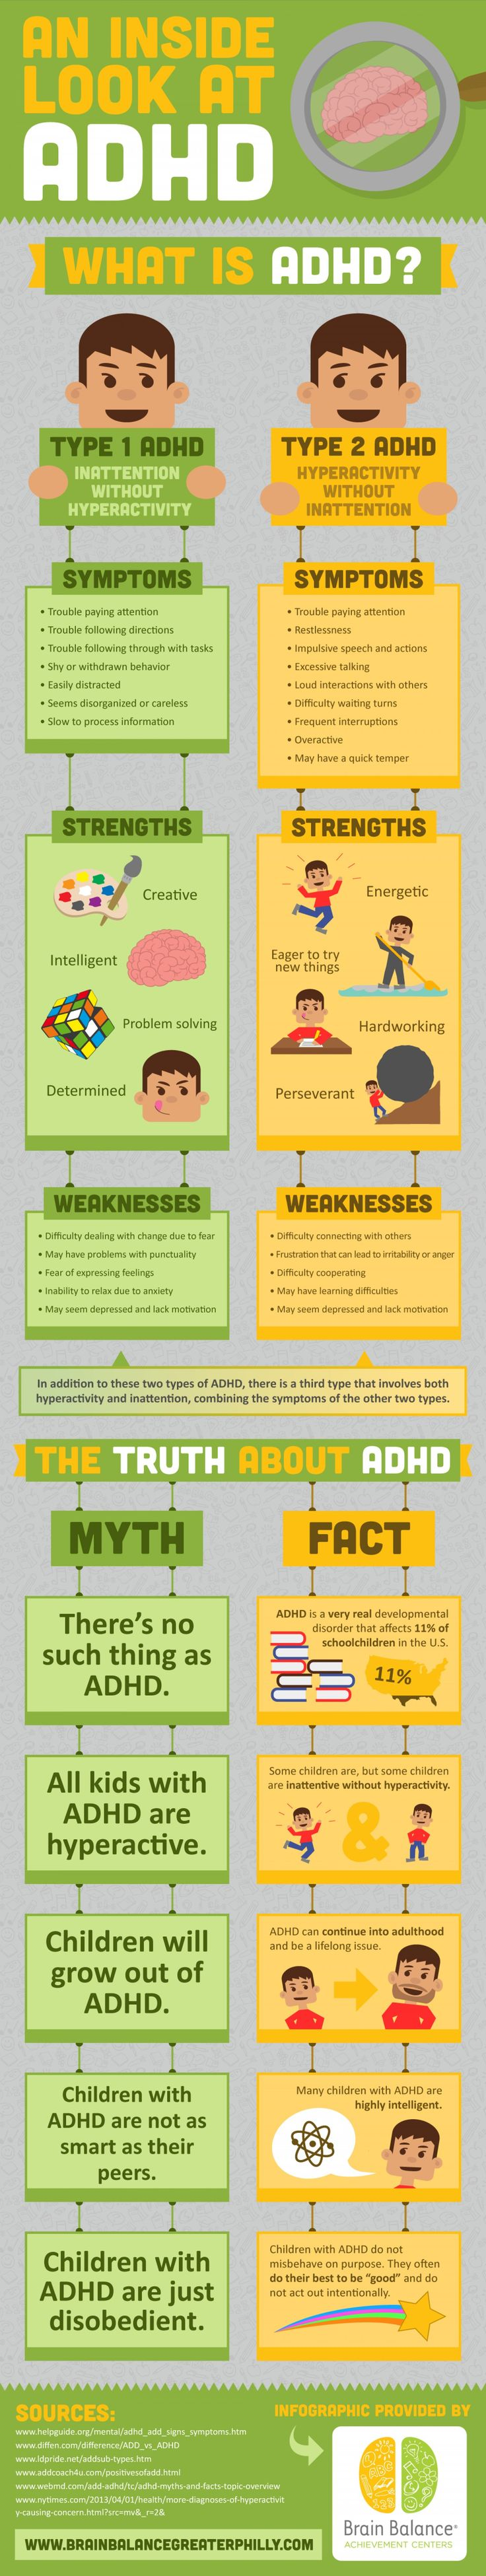 Children with type 2 ADHD often exhibit a number of strengths, including an eagerness to try new things and a hard working spirit. Take a look at this